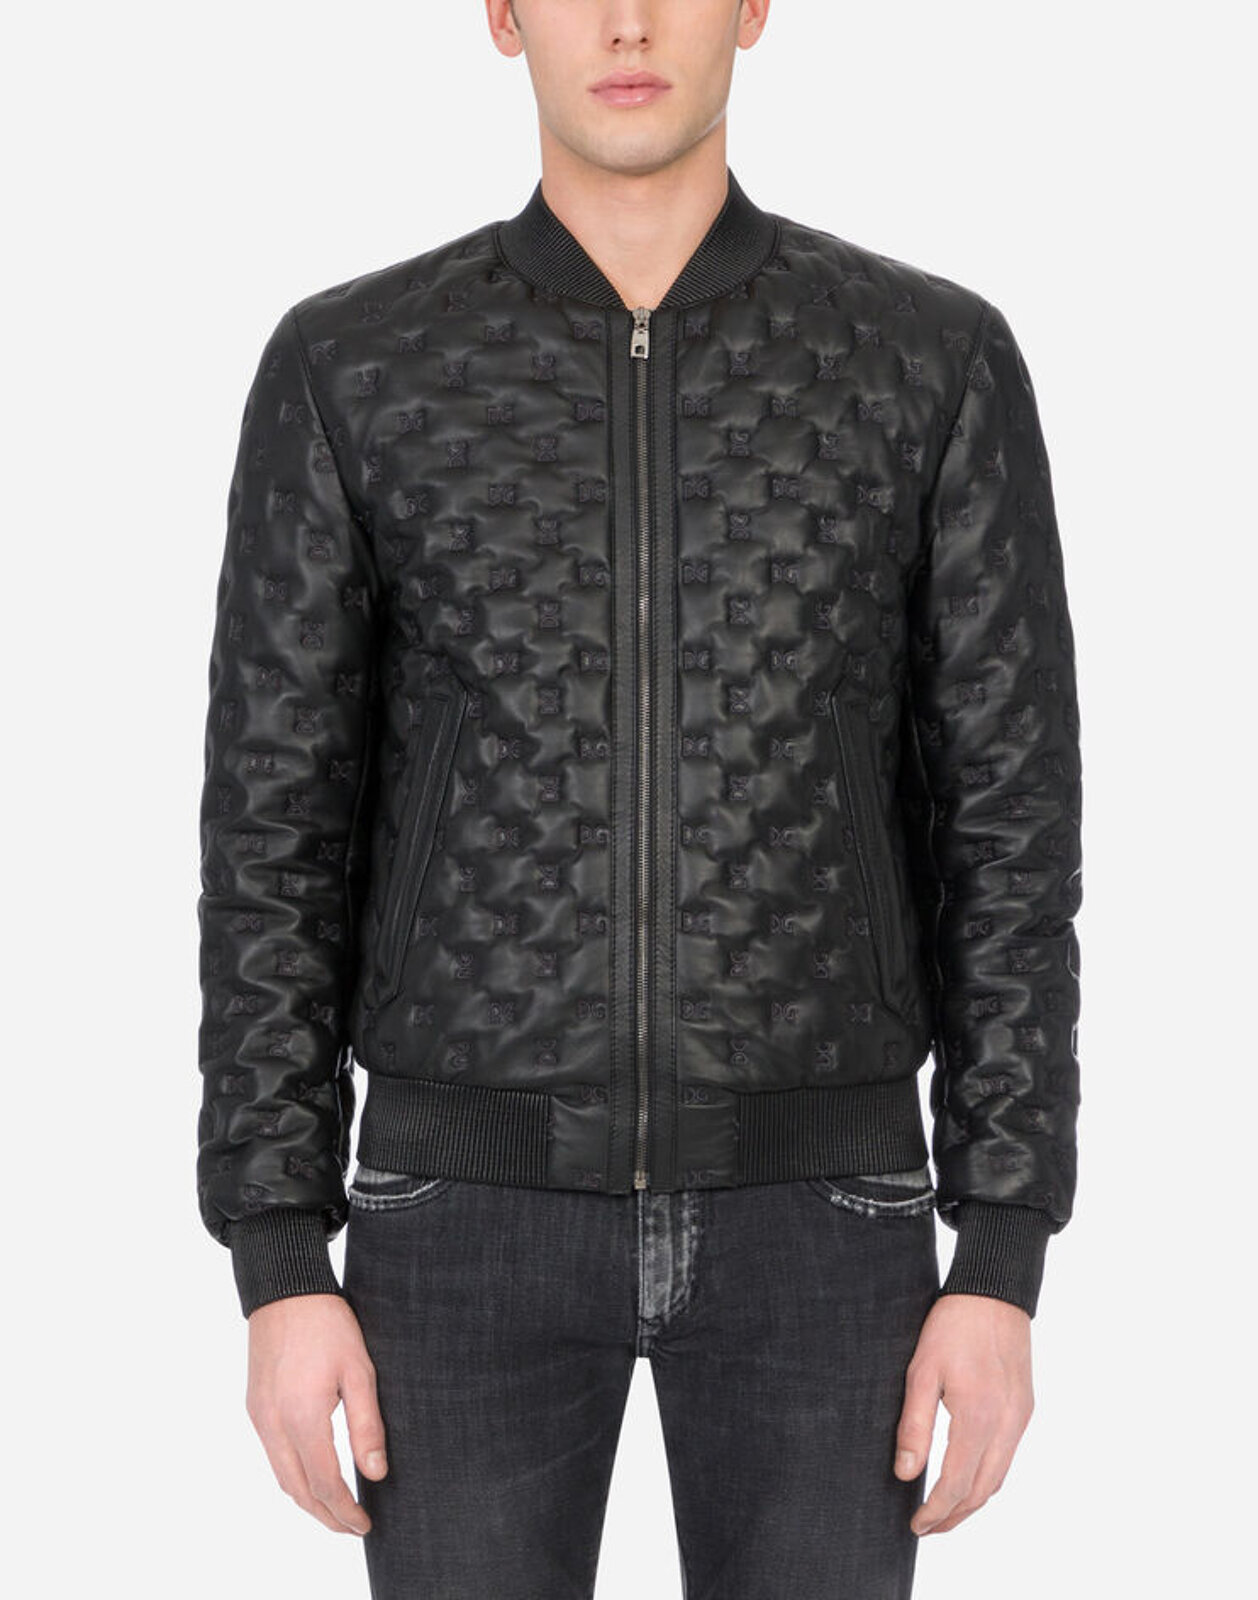 Quilted Leather Jacket With Embroidery Dg - Dolce & Gabbana